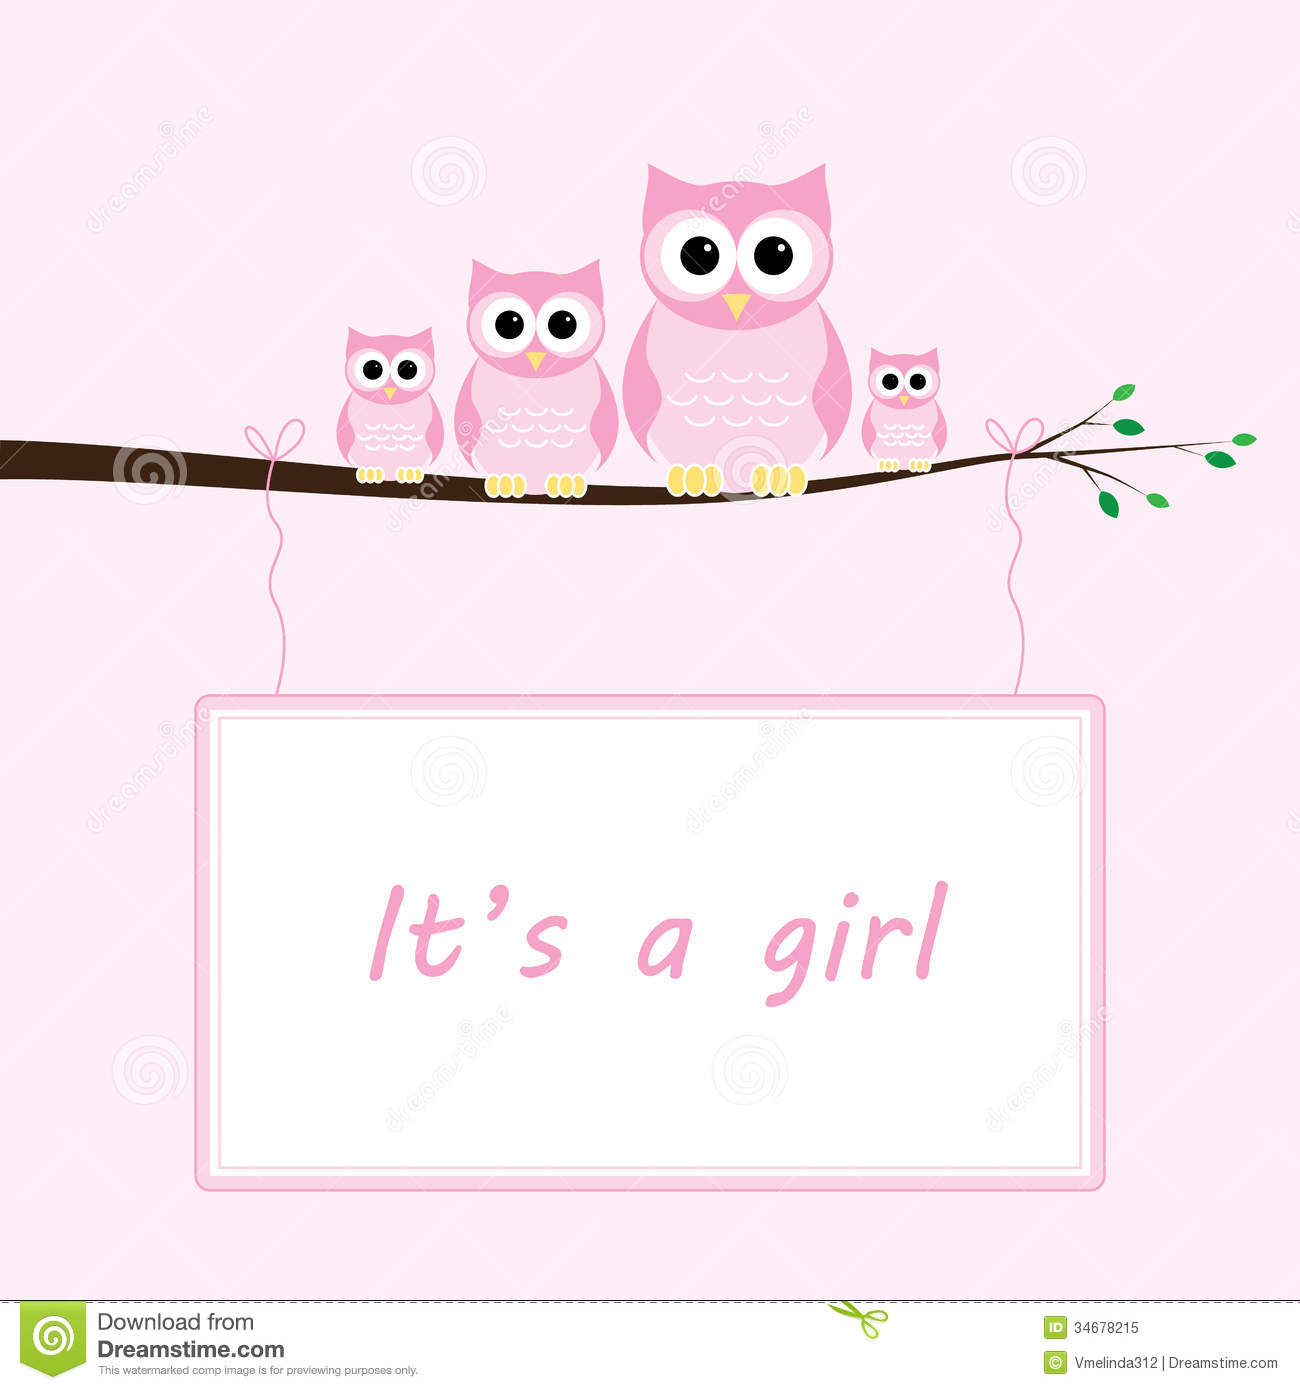 Its A Girl Baby Shower Invitations as amazing invitation example